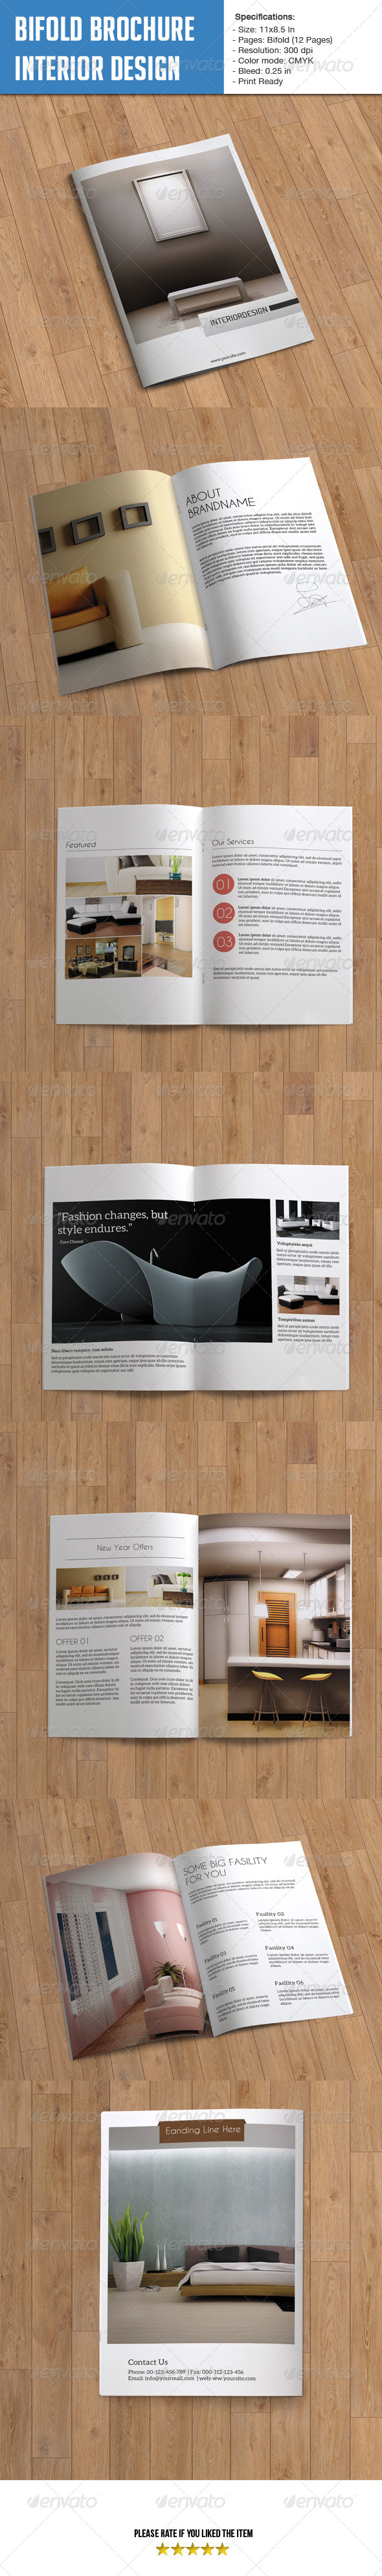 Bifold Brochure for Interior Design- 12 Pages - Corporate Brochures